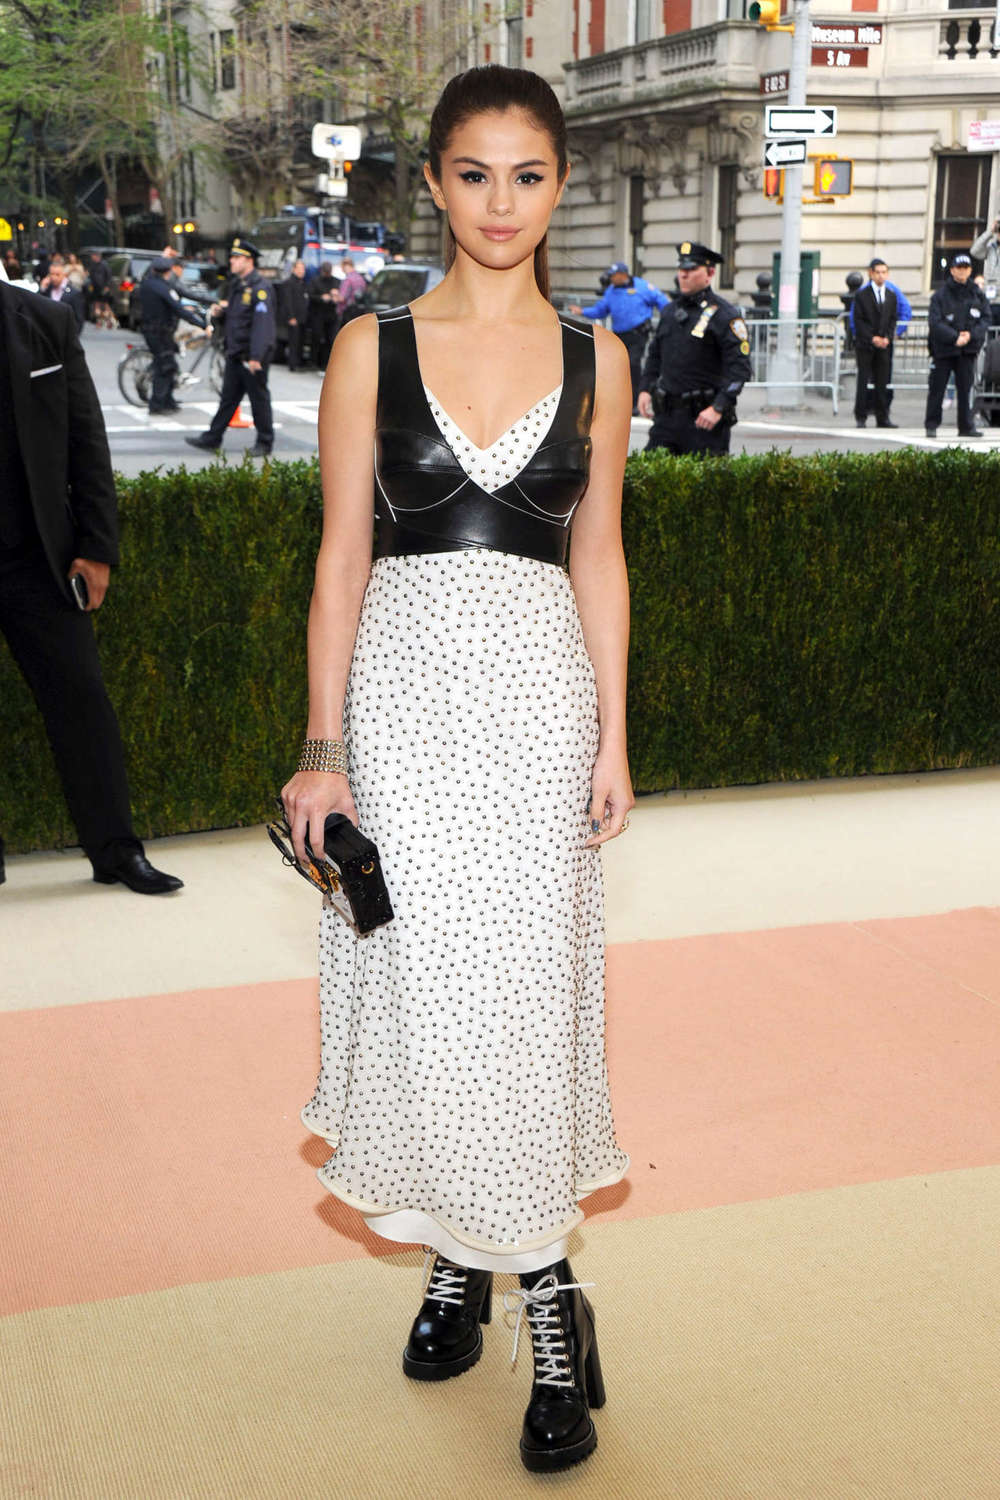 selena-gomez-in-louis-vuitton-at-2016-met-gala-in-new-york-city-3.jpg